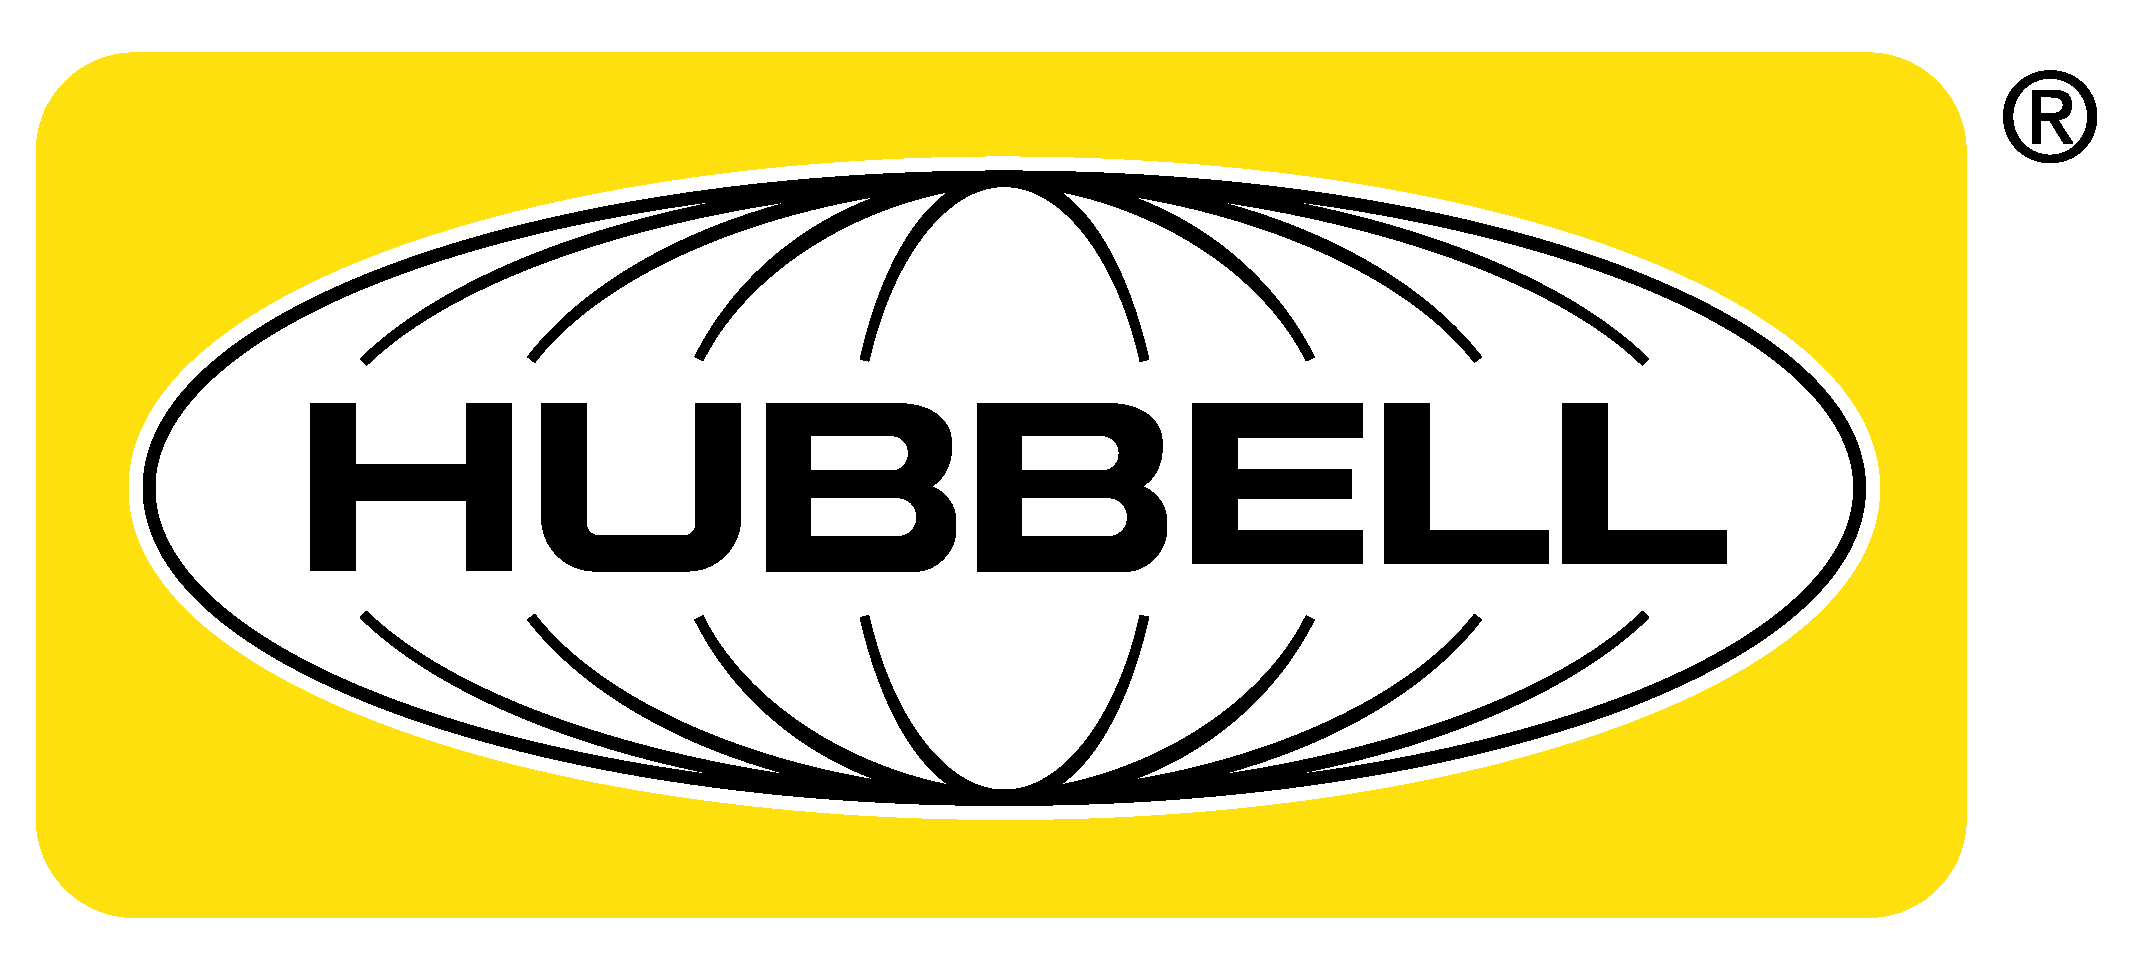 Hubbell-01